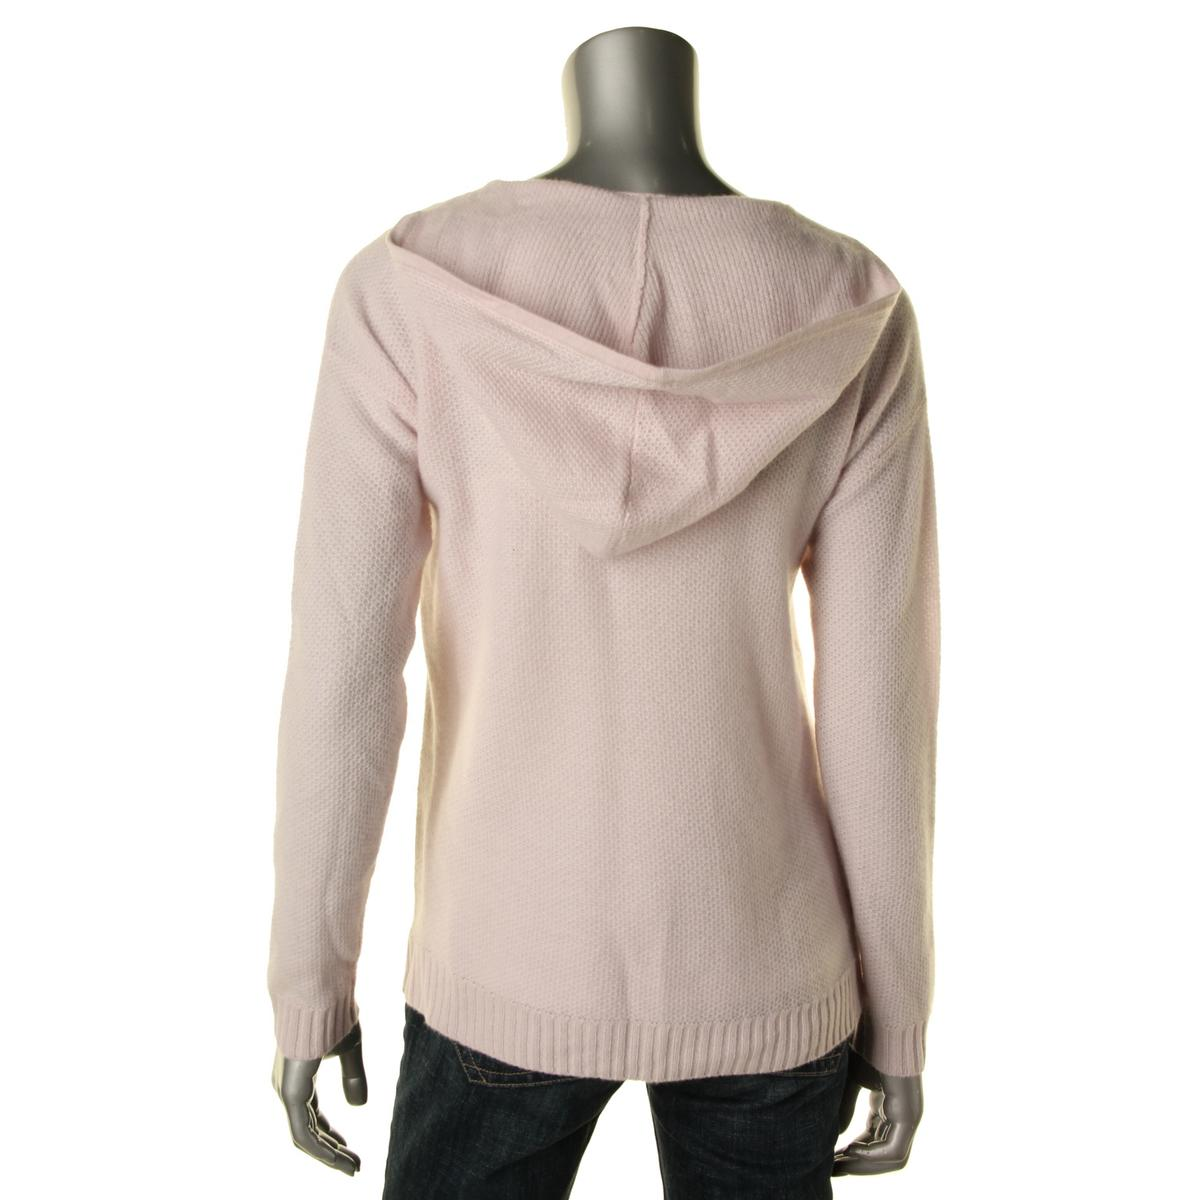 private label 3709 womens cashmere hooded v neck pullover sweater top bhfo ebay. Black Bedroom Furniture Sets. Home Design Ideas